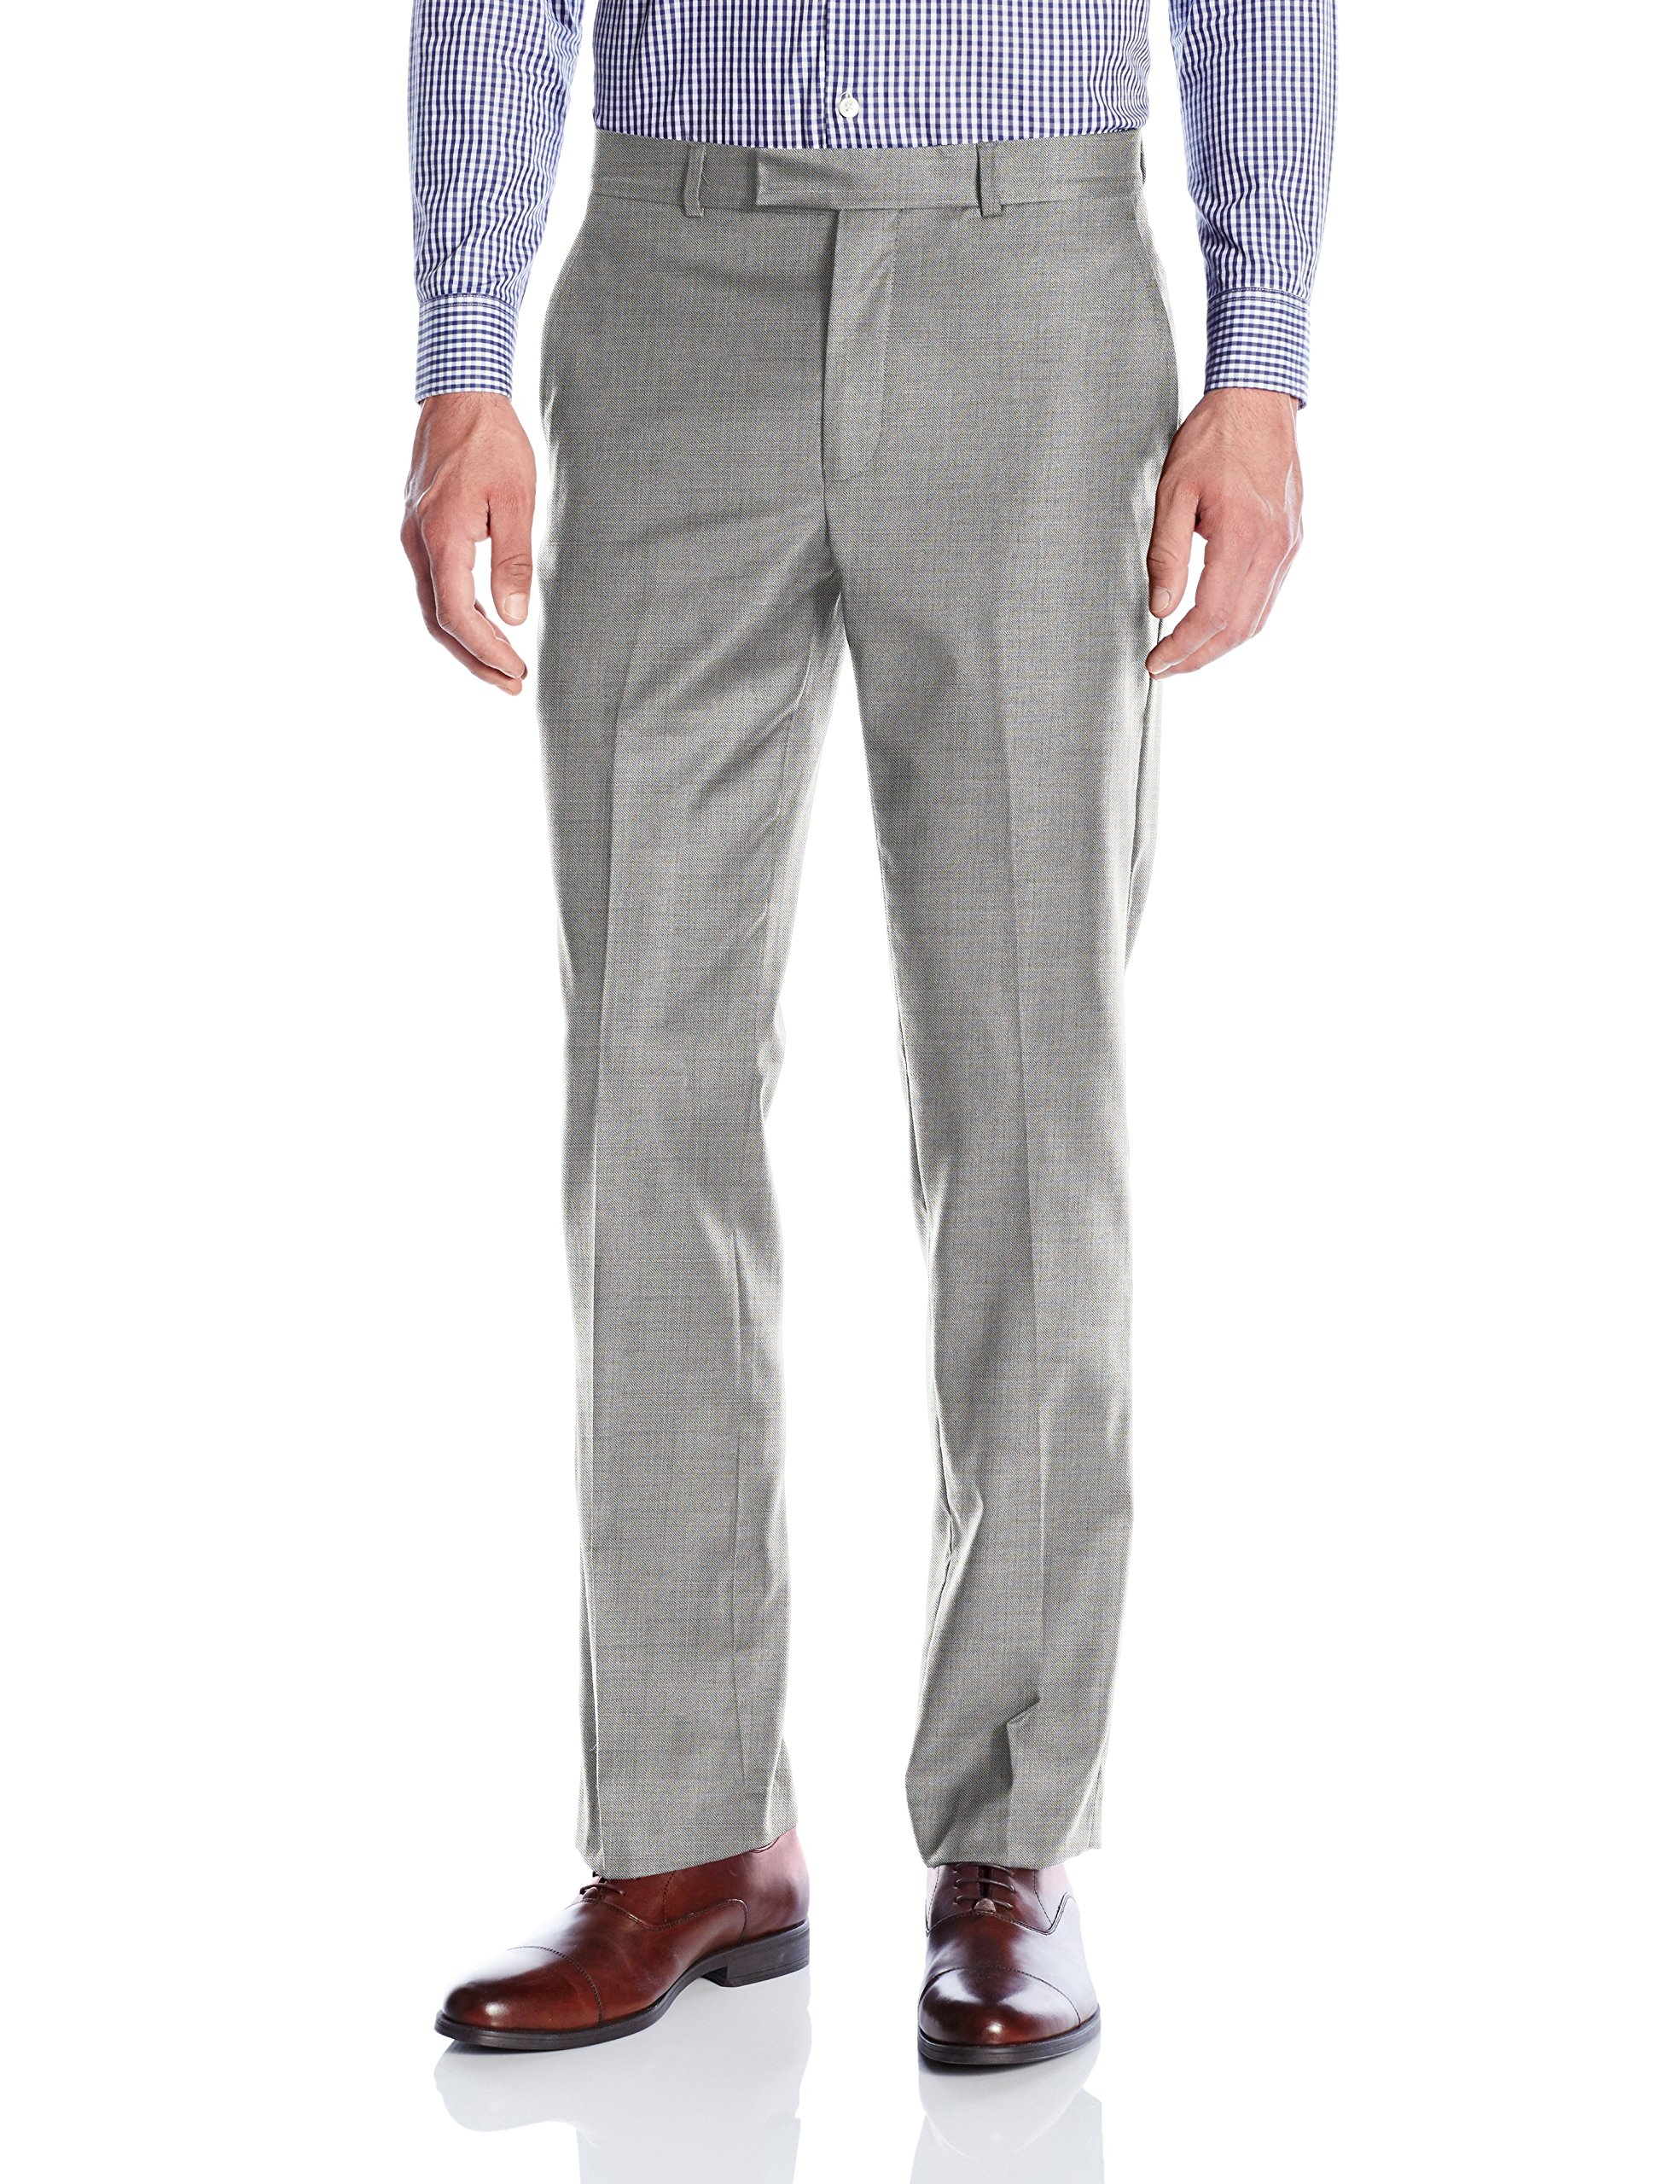 Kenneth Cole New York Men's Performance Wool Suit Separate (Blazer and Pant), Grey Pant, 40W x 32L